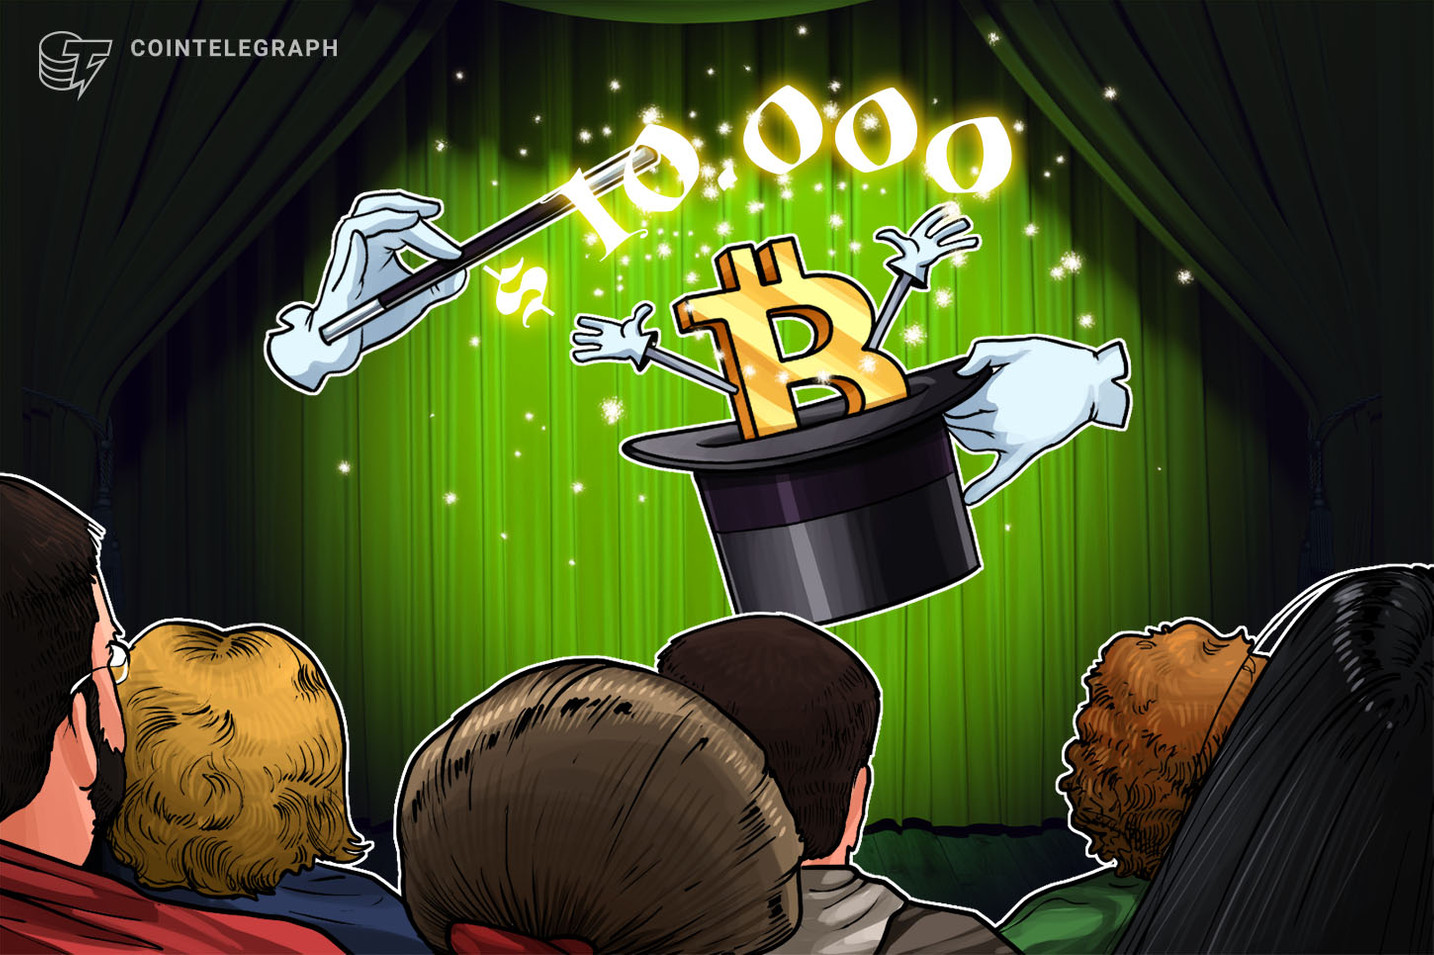 Bitcoin Price Hits $10,000 for the First Time in 2020 — Up 40% YTD